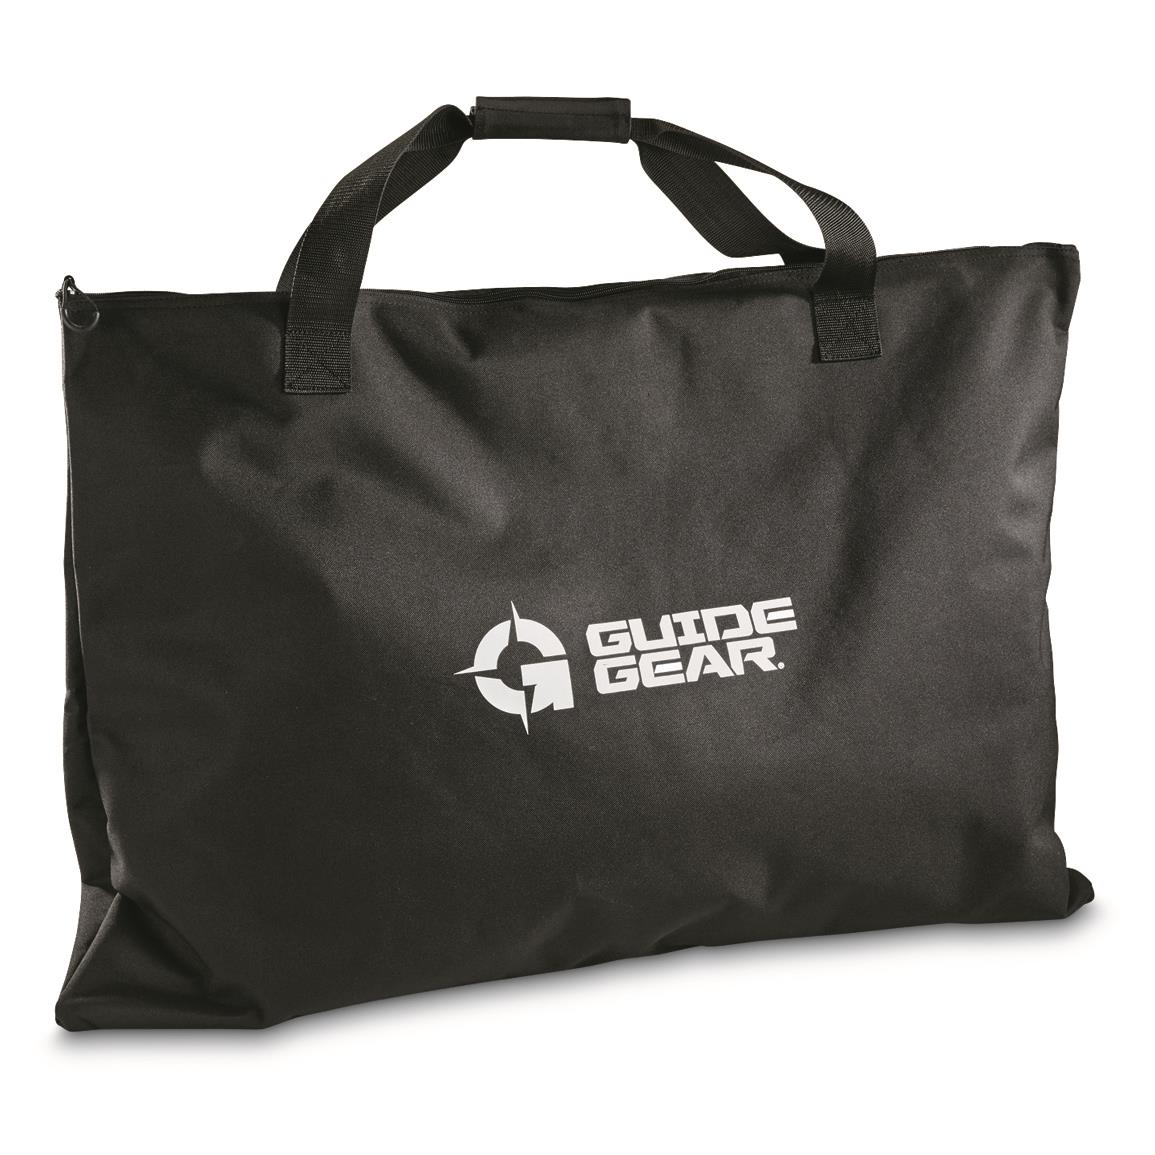 Guide Gear Field Bag